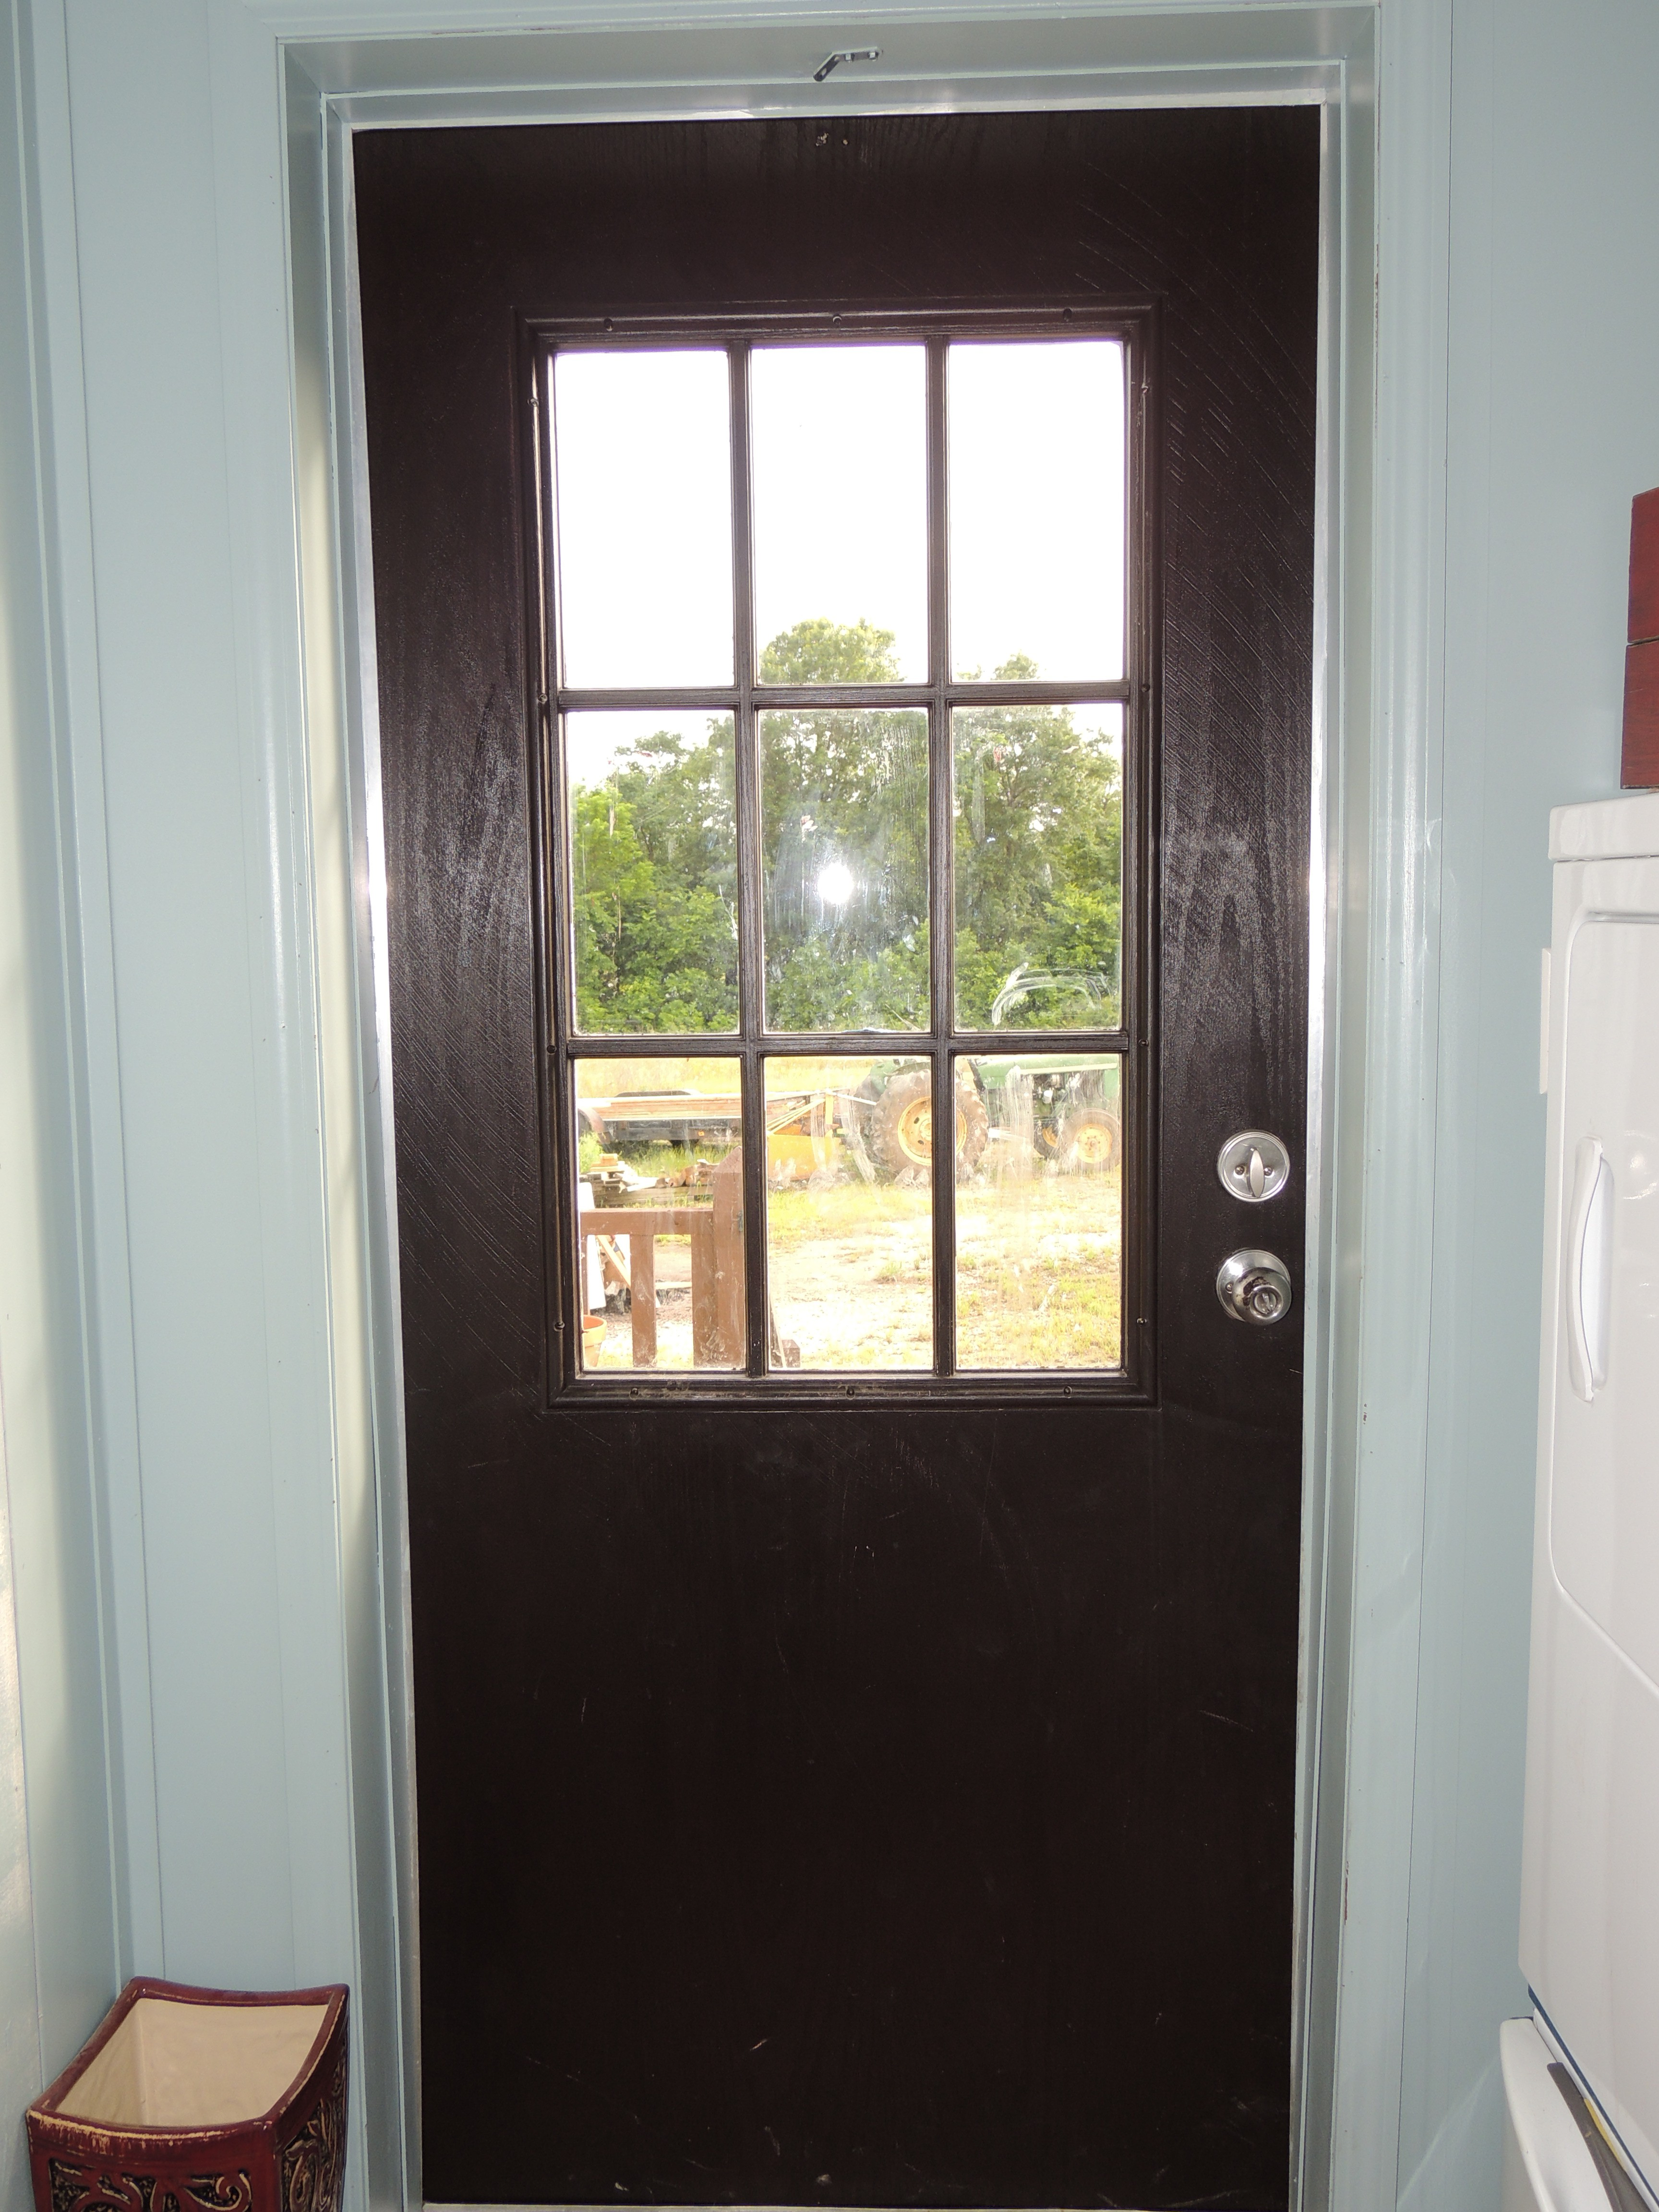 4608 #867D45 Staining Fiberglass Doors Roses And Wrenches image Stainable Fiberglass Entry Doors 40233456